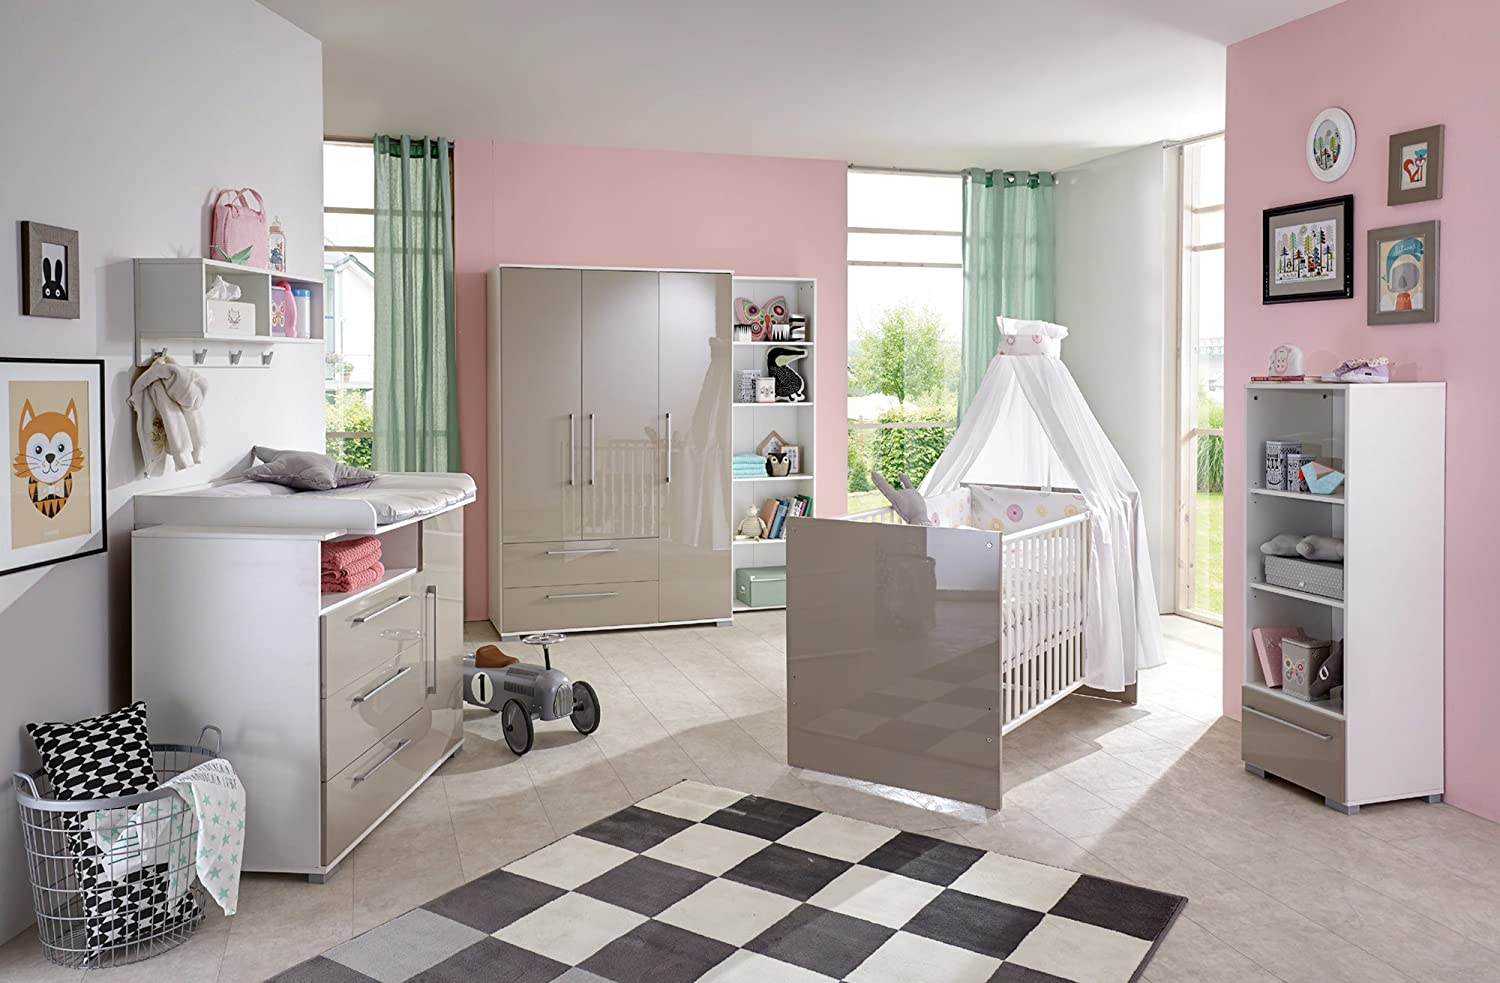 babyzimmer kinderzimmer babym bel komplett set babyausstattung babybett wickelkommode. Black Bedroom Furniture Sets. Home Design Ideas